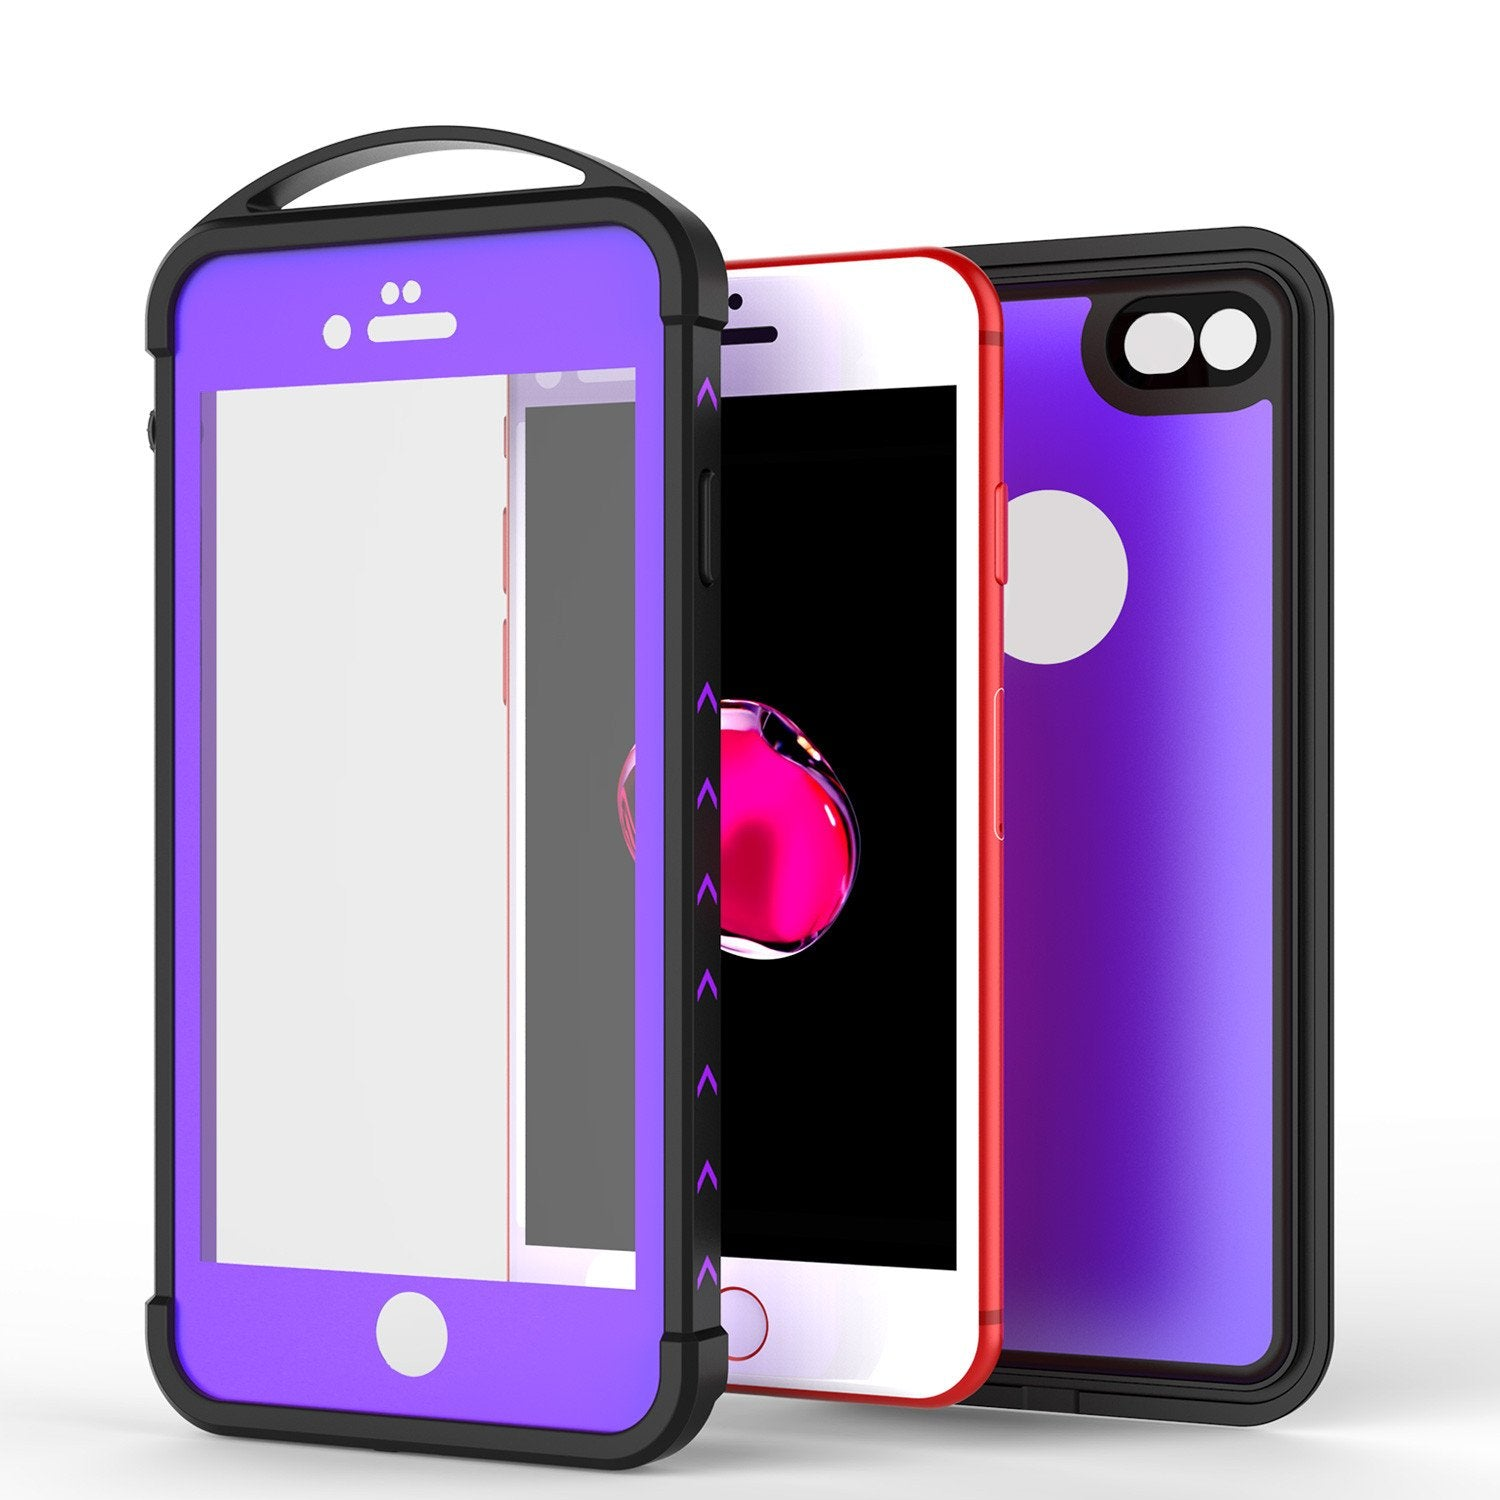 iPhone 8 Waterproof Case, Punkcase ALPINE Series, Purple | Heavy Duty Armor Cover